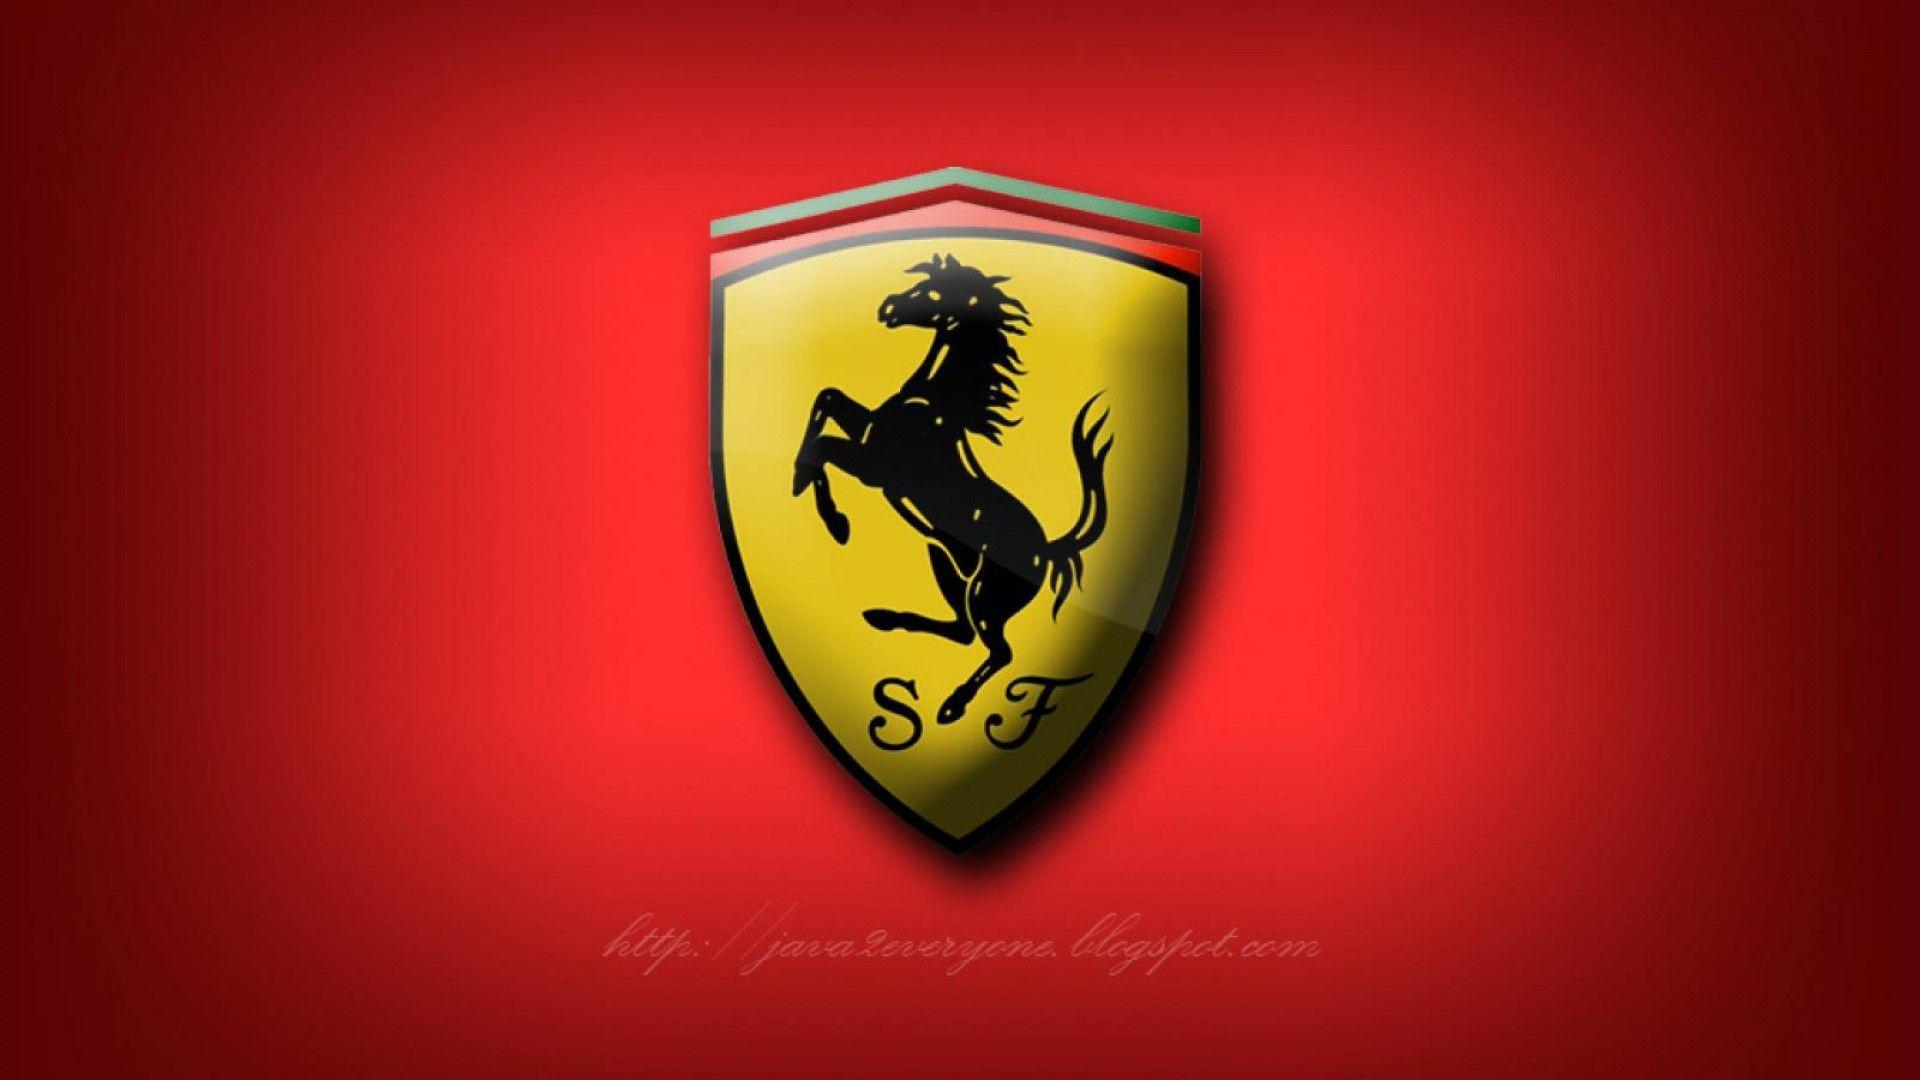 P Logo Wallpaper Ferrari Symbol Wallpap...